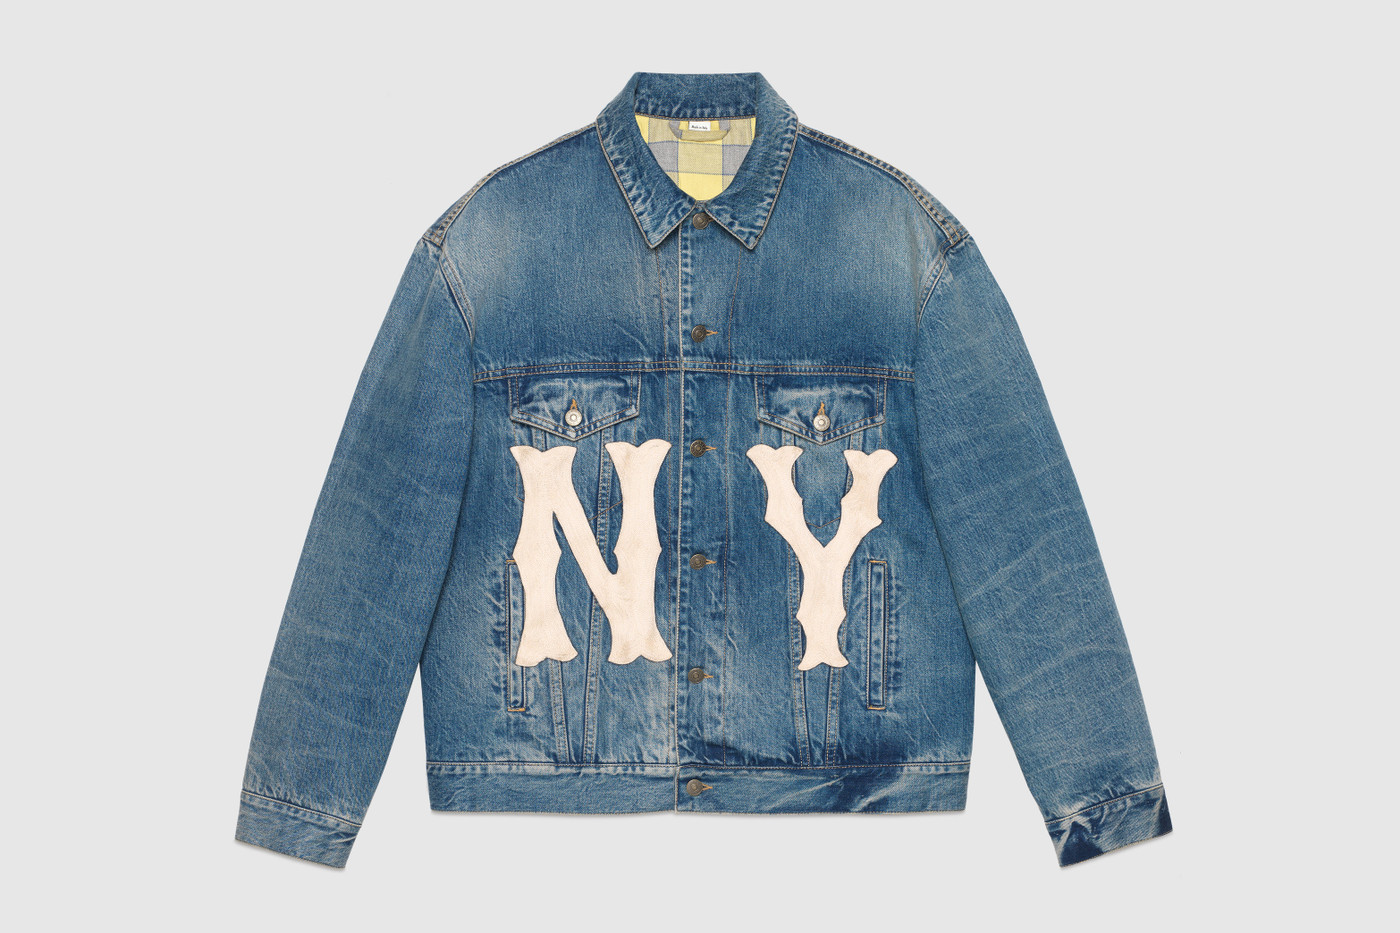 a25c8a787ec Gucci Extends On Its Love For the NY Yankees With a New Capsule ...